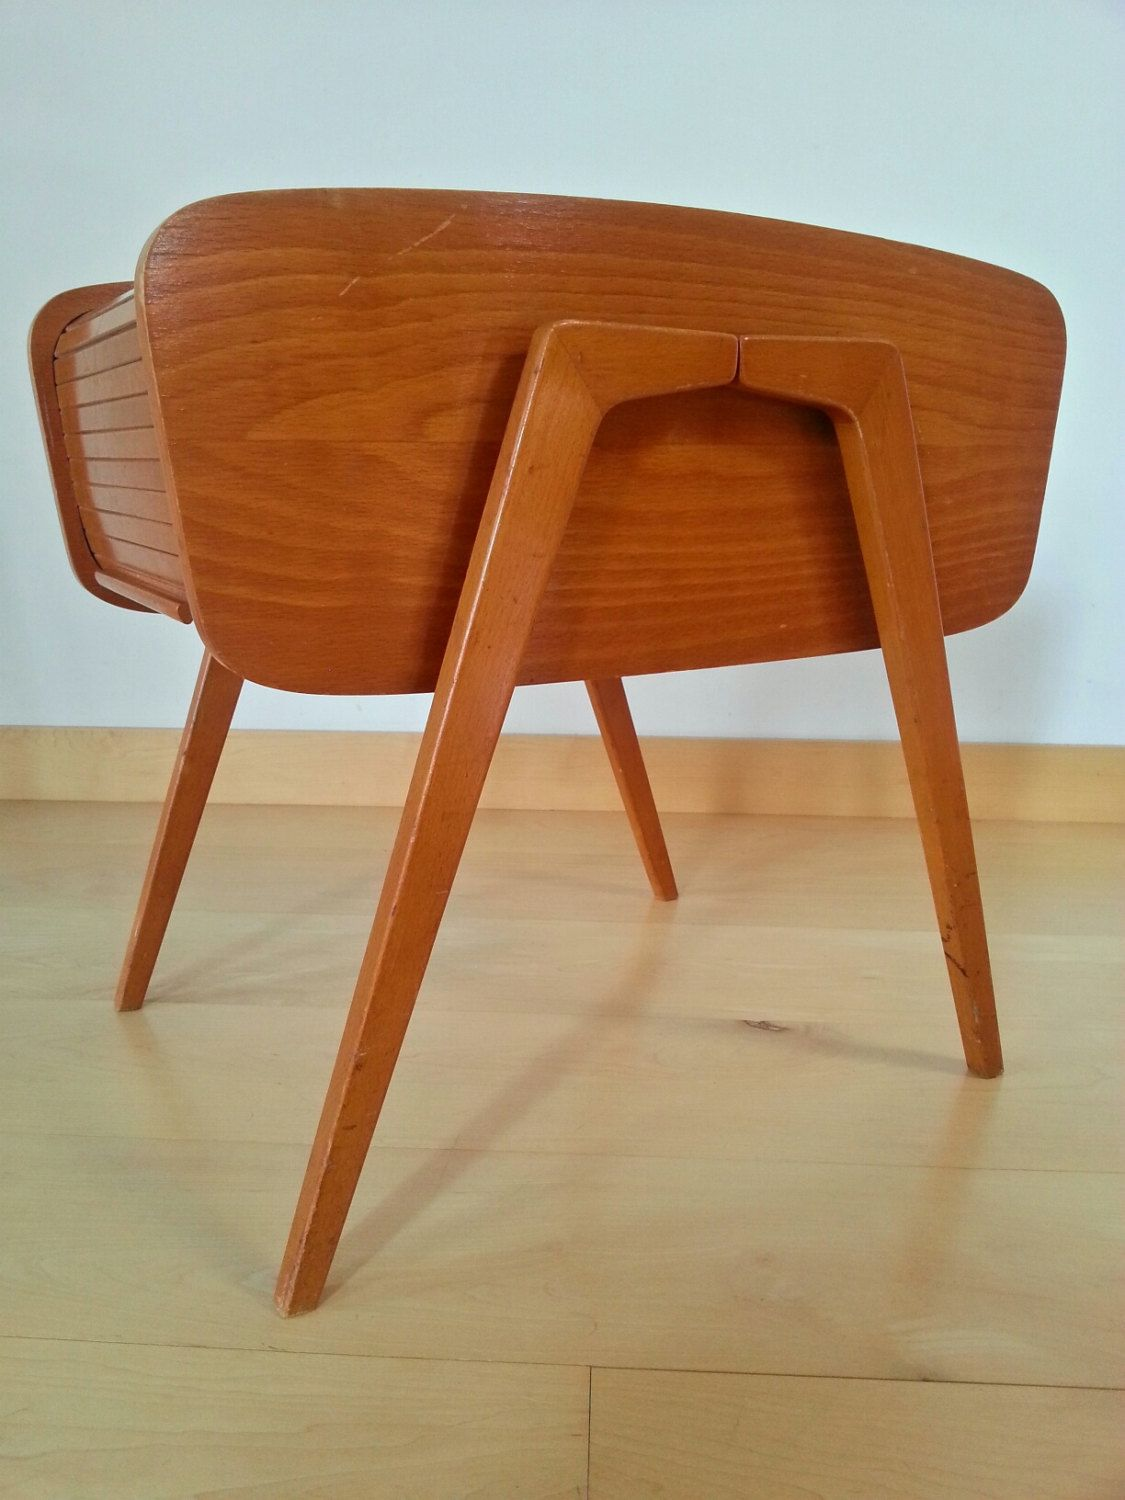 Sewing Box 50s Danish Design Mid Century Modern Wood Beech  # Muebles Nacho Polo